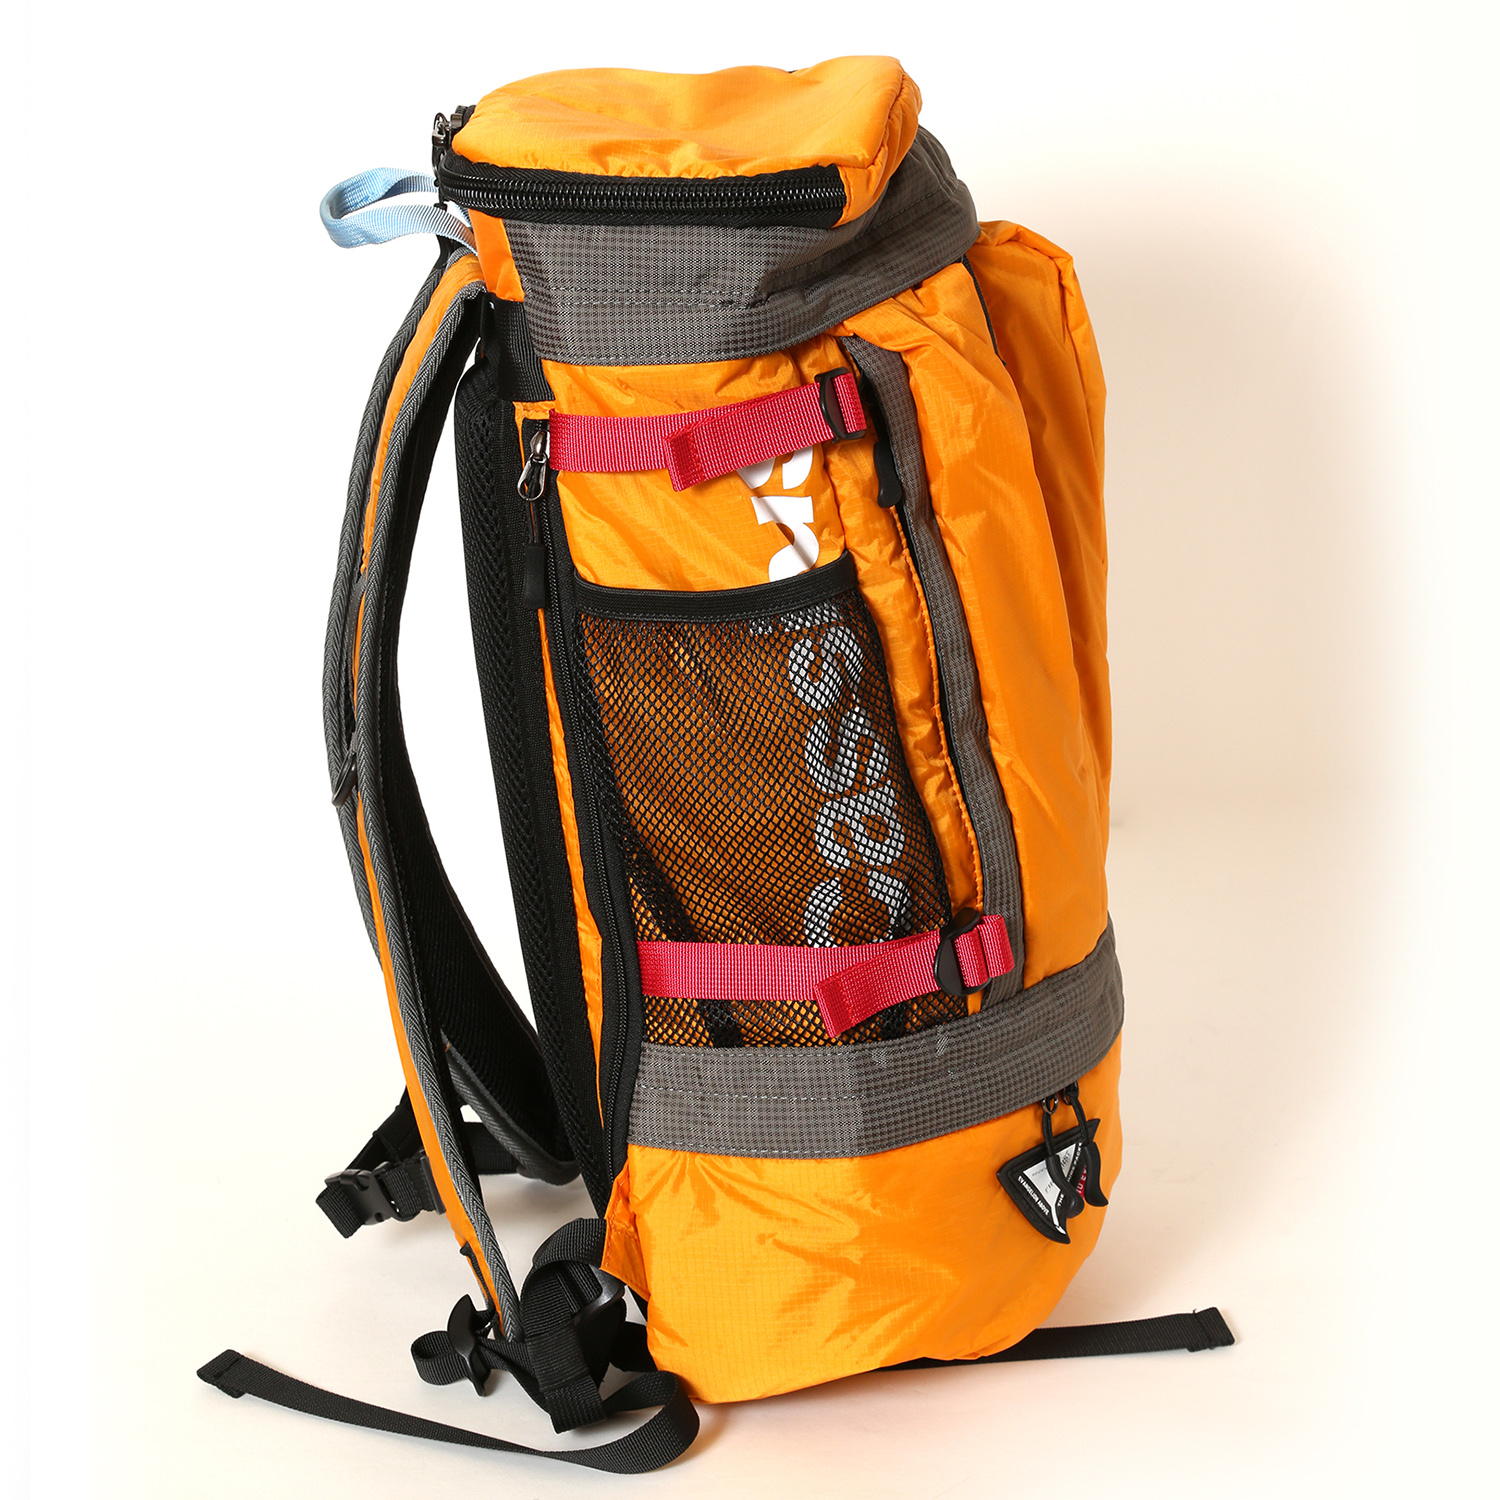 EVANGELION ABOVE ROUND BACK PACK by FIRE FIRST (Mark.09 MDOEL)